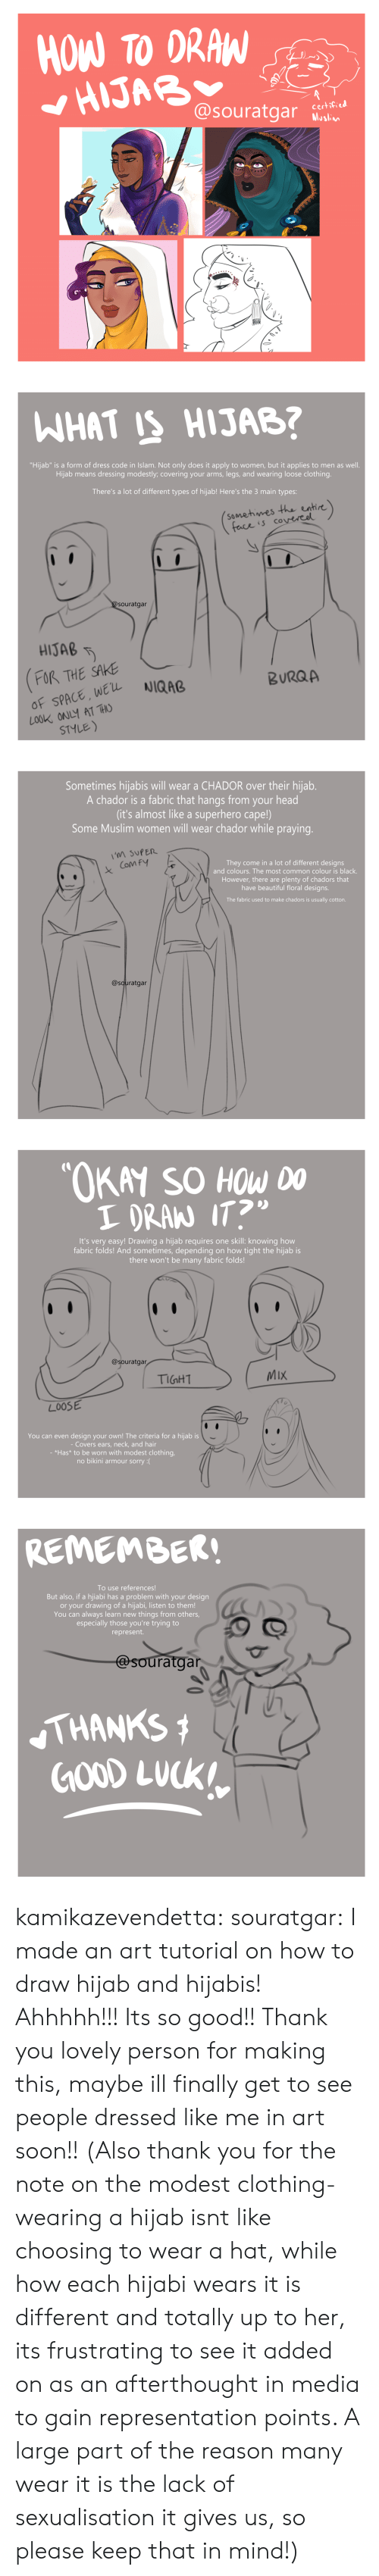 "Colour: HOW TO DRAW  HIJAB  @souratgar  certified  Muslim   WHAT IS HIJAB?  ""Hijab"" is a form of dress code in Islam. Not only does it apply to women, but it applies to men as well.  Hijab means dressing modestly; covering your arms, legs, and wearing loose clothing.  There's a lot of different types of hijab! Here's the 3 main types:  (somehimes the entire)  face is covereel  @Souratgar  HIJAB  FOR THE SAKE  OF SPACE, WEL  LOOK ONLY AT THO  STYLE)  NIQAB  BURQA   Sometimes hijabis will wear a CHADOR over their hijab.  A chador is a fabric that hangs from your head  (it's almost like a superhero cape!)  Some Muslim women will wear chador while praying.  M SUPER  They come in a lot of different designs  and colours. The most common colour is black.  Com FY  However, there are plenty of chadors that  have beautiful floral designs.  The fabric used to make chadors is usually cotton.  @souratgar   ""OKAY SO HOW DO  I DRAN IT?  It's very easy! Drawing a hijab requi res one skill: knowing how  fabric folds! And sometimes, depending on how tight the hijab is  there won't be many fabric folds!  @souratgar  MIX  TIGHT  LOOSE  You can even design your own! The criteria for a hijab is  - Covers ears, neck, and hair  - *Has* to be worn with modest clothing,  no bikini armour sorry :(   REMEMBER!  To use references!  But also, if a hijiabi has a problem with your design  or your drawing of a hijabi, listen to them!  You can always learn new things from others,  especially those you're trying to  represent.  @souratgar  THANKS  GOOD LUCK kamikazevendetta:  souratgar: I made an art tutorial on how to draw hijab and hijabis! Ahhhhh!!! Its so good!! Thank you lovely person for making this, maybe ill finally get to see people dressed like me in art soon!!   (Also thank you for the note on the modest clothing- wearing a hijab isnt like choosing to wear a hat, while how each hijabi wears it is different and totally up to her, its frustrating to see it added on as an afterthought in media to gain representation points. A large part of the reason many wear it is the lack of sexualisation it gives us, so please keep that in mind!)"